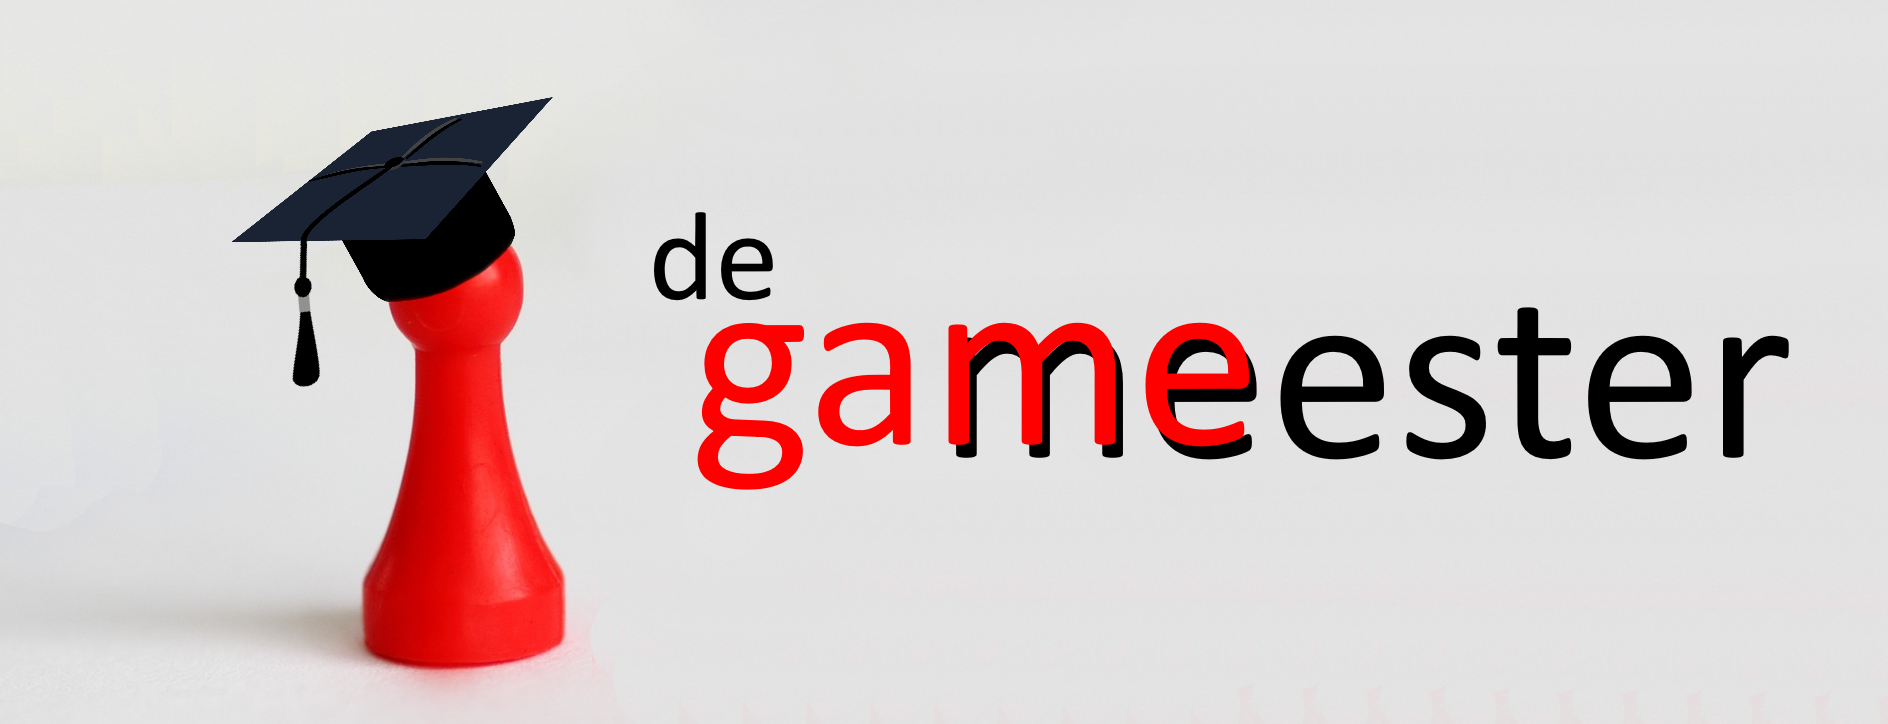 De GameMeester - Educatieve apps